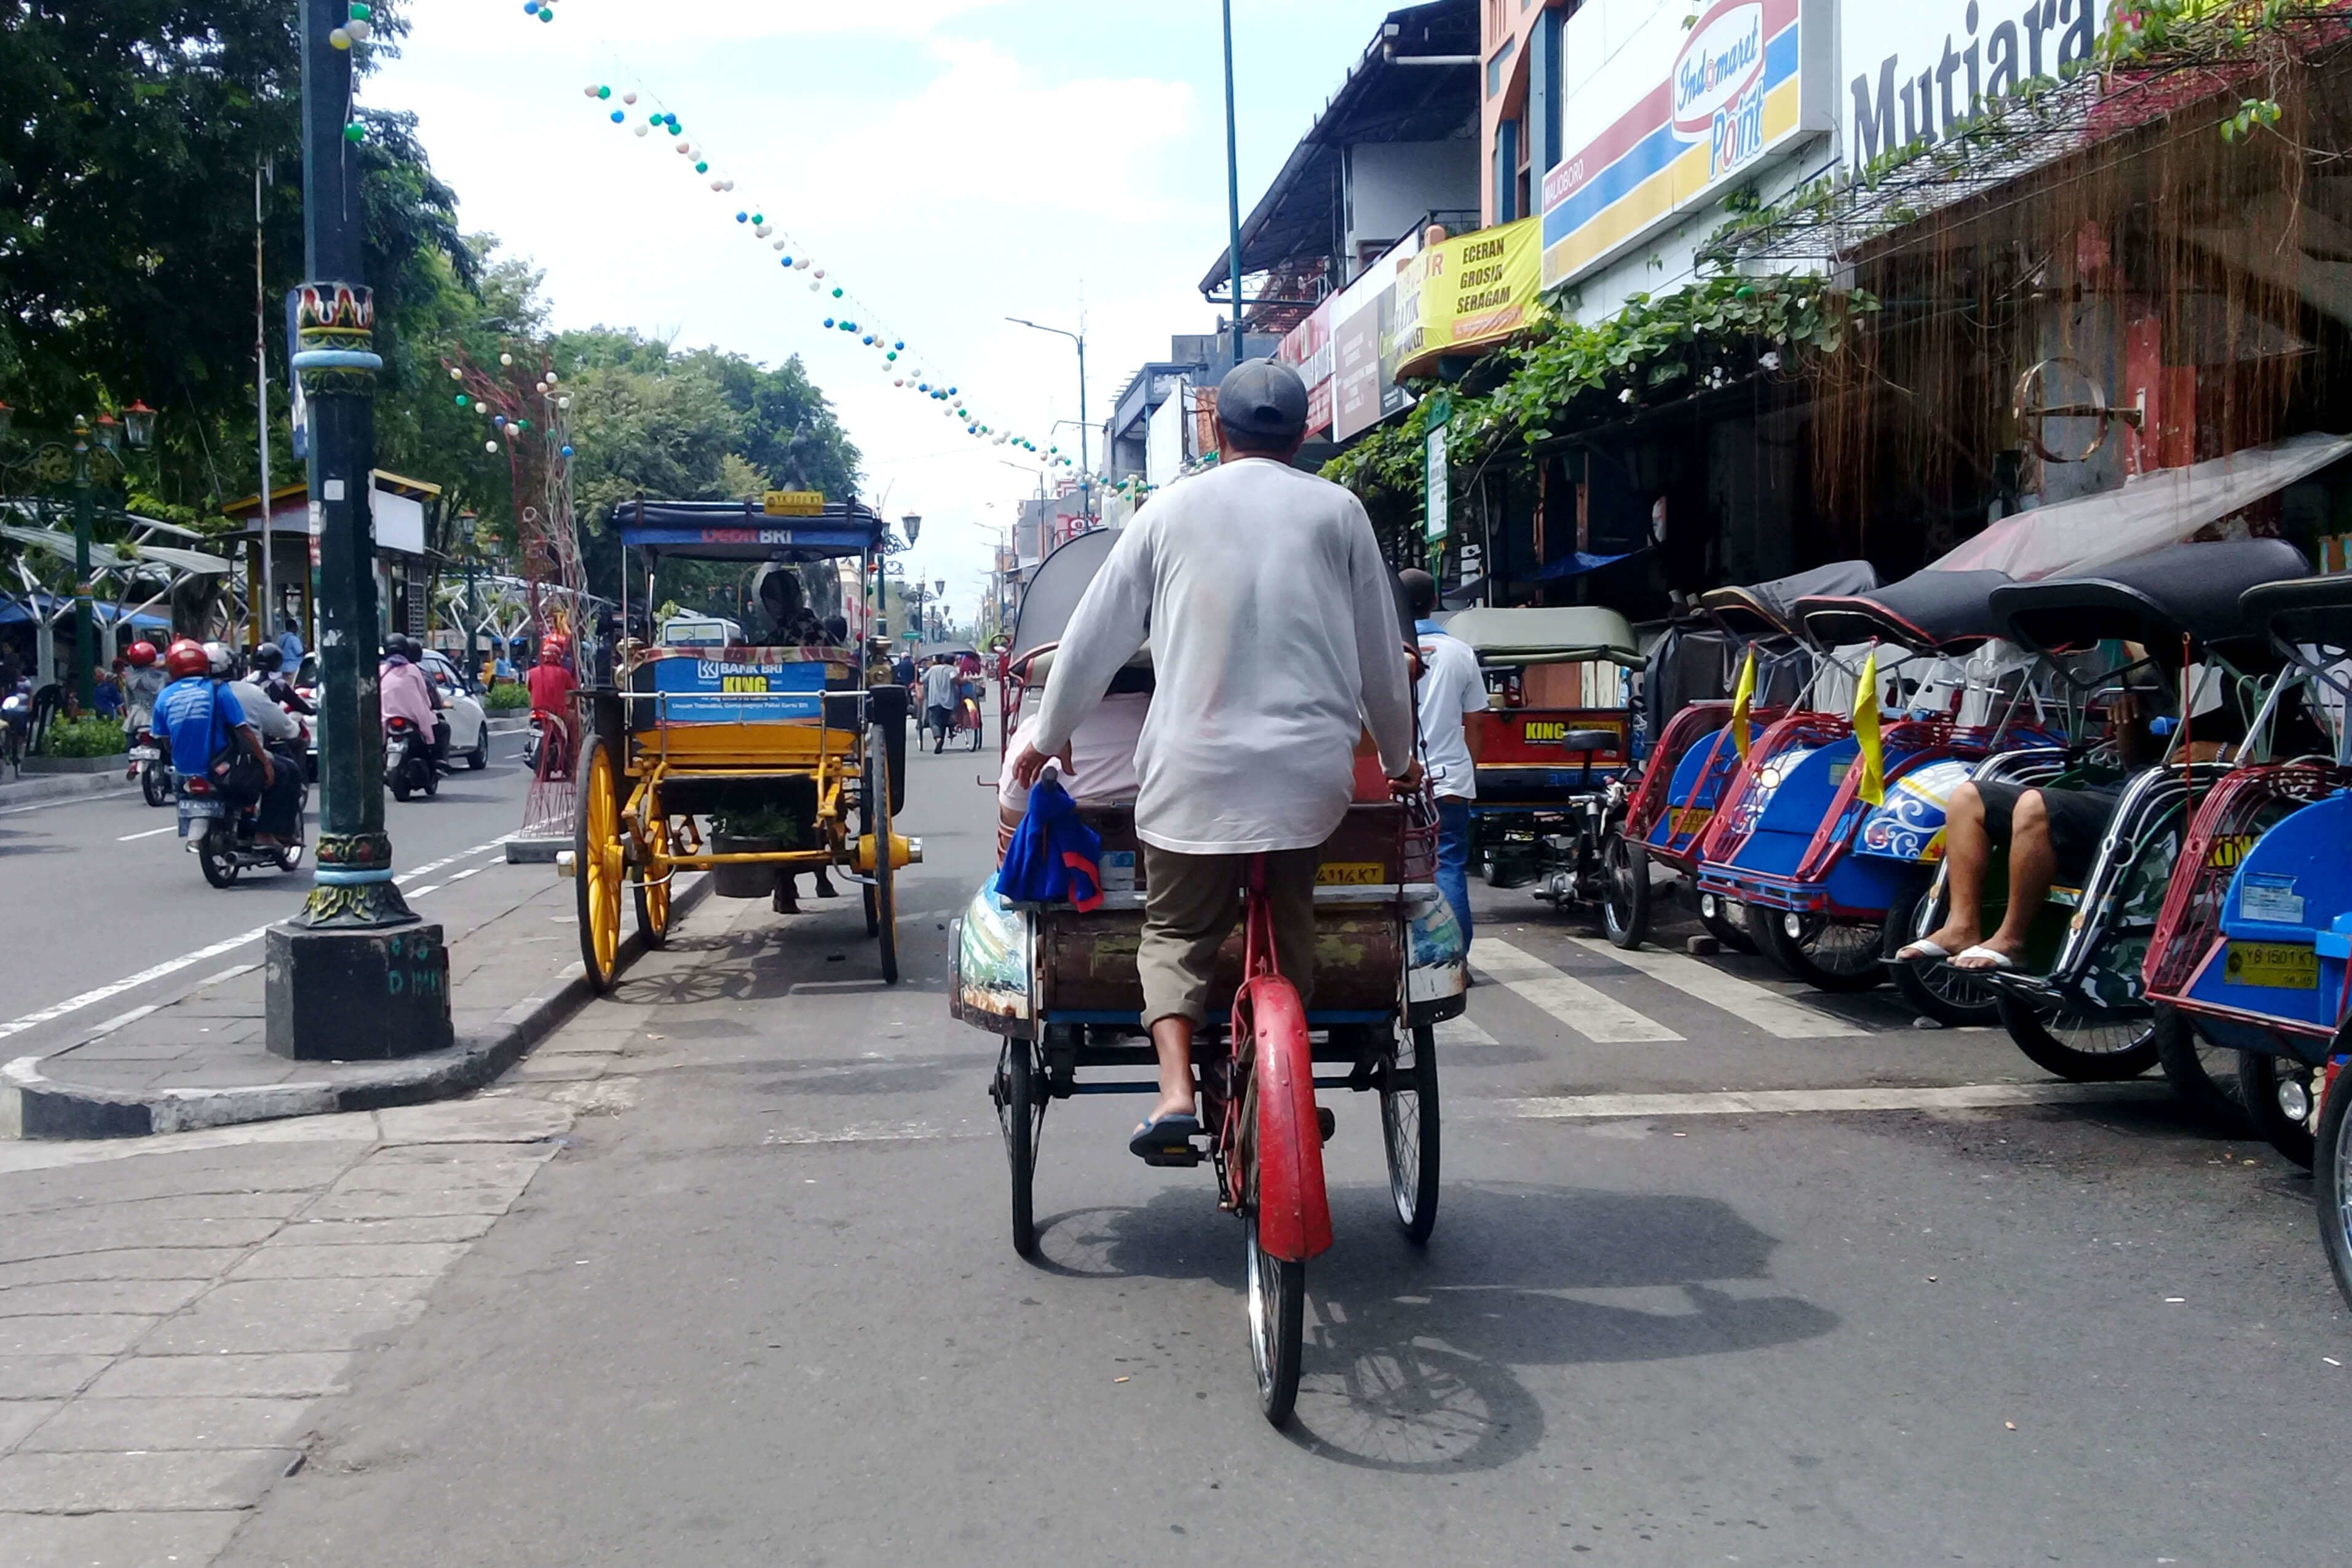 Man on a bike pushes a cart on an Indonesian street